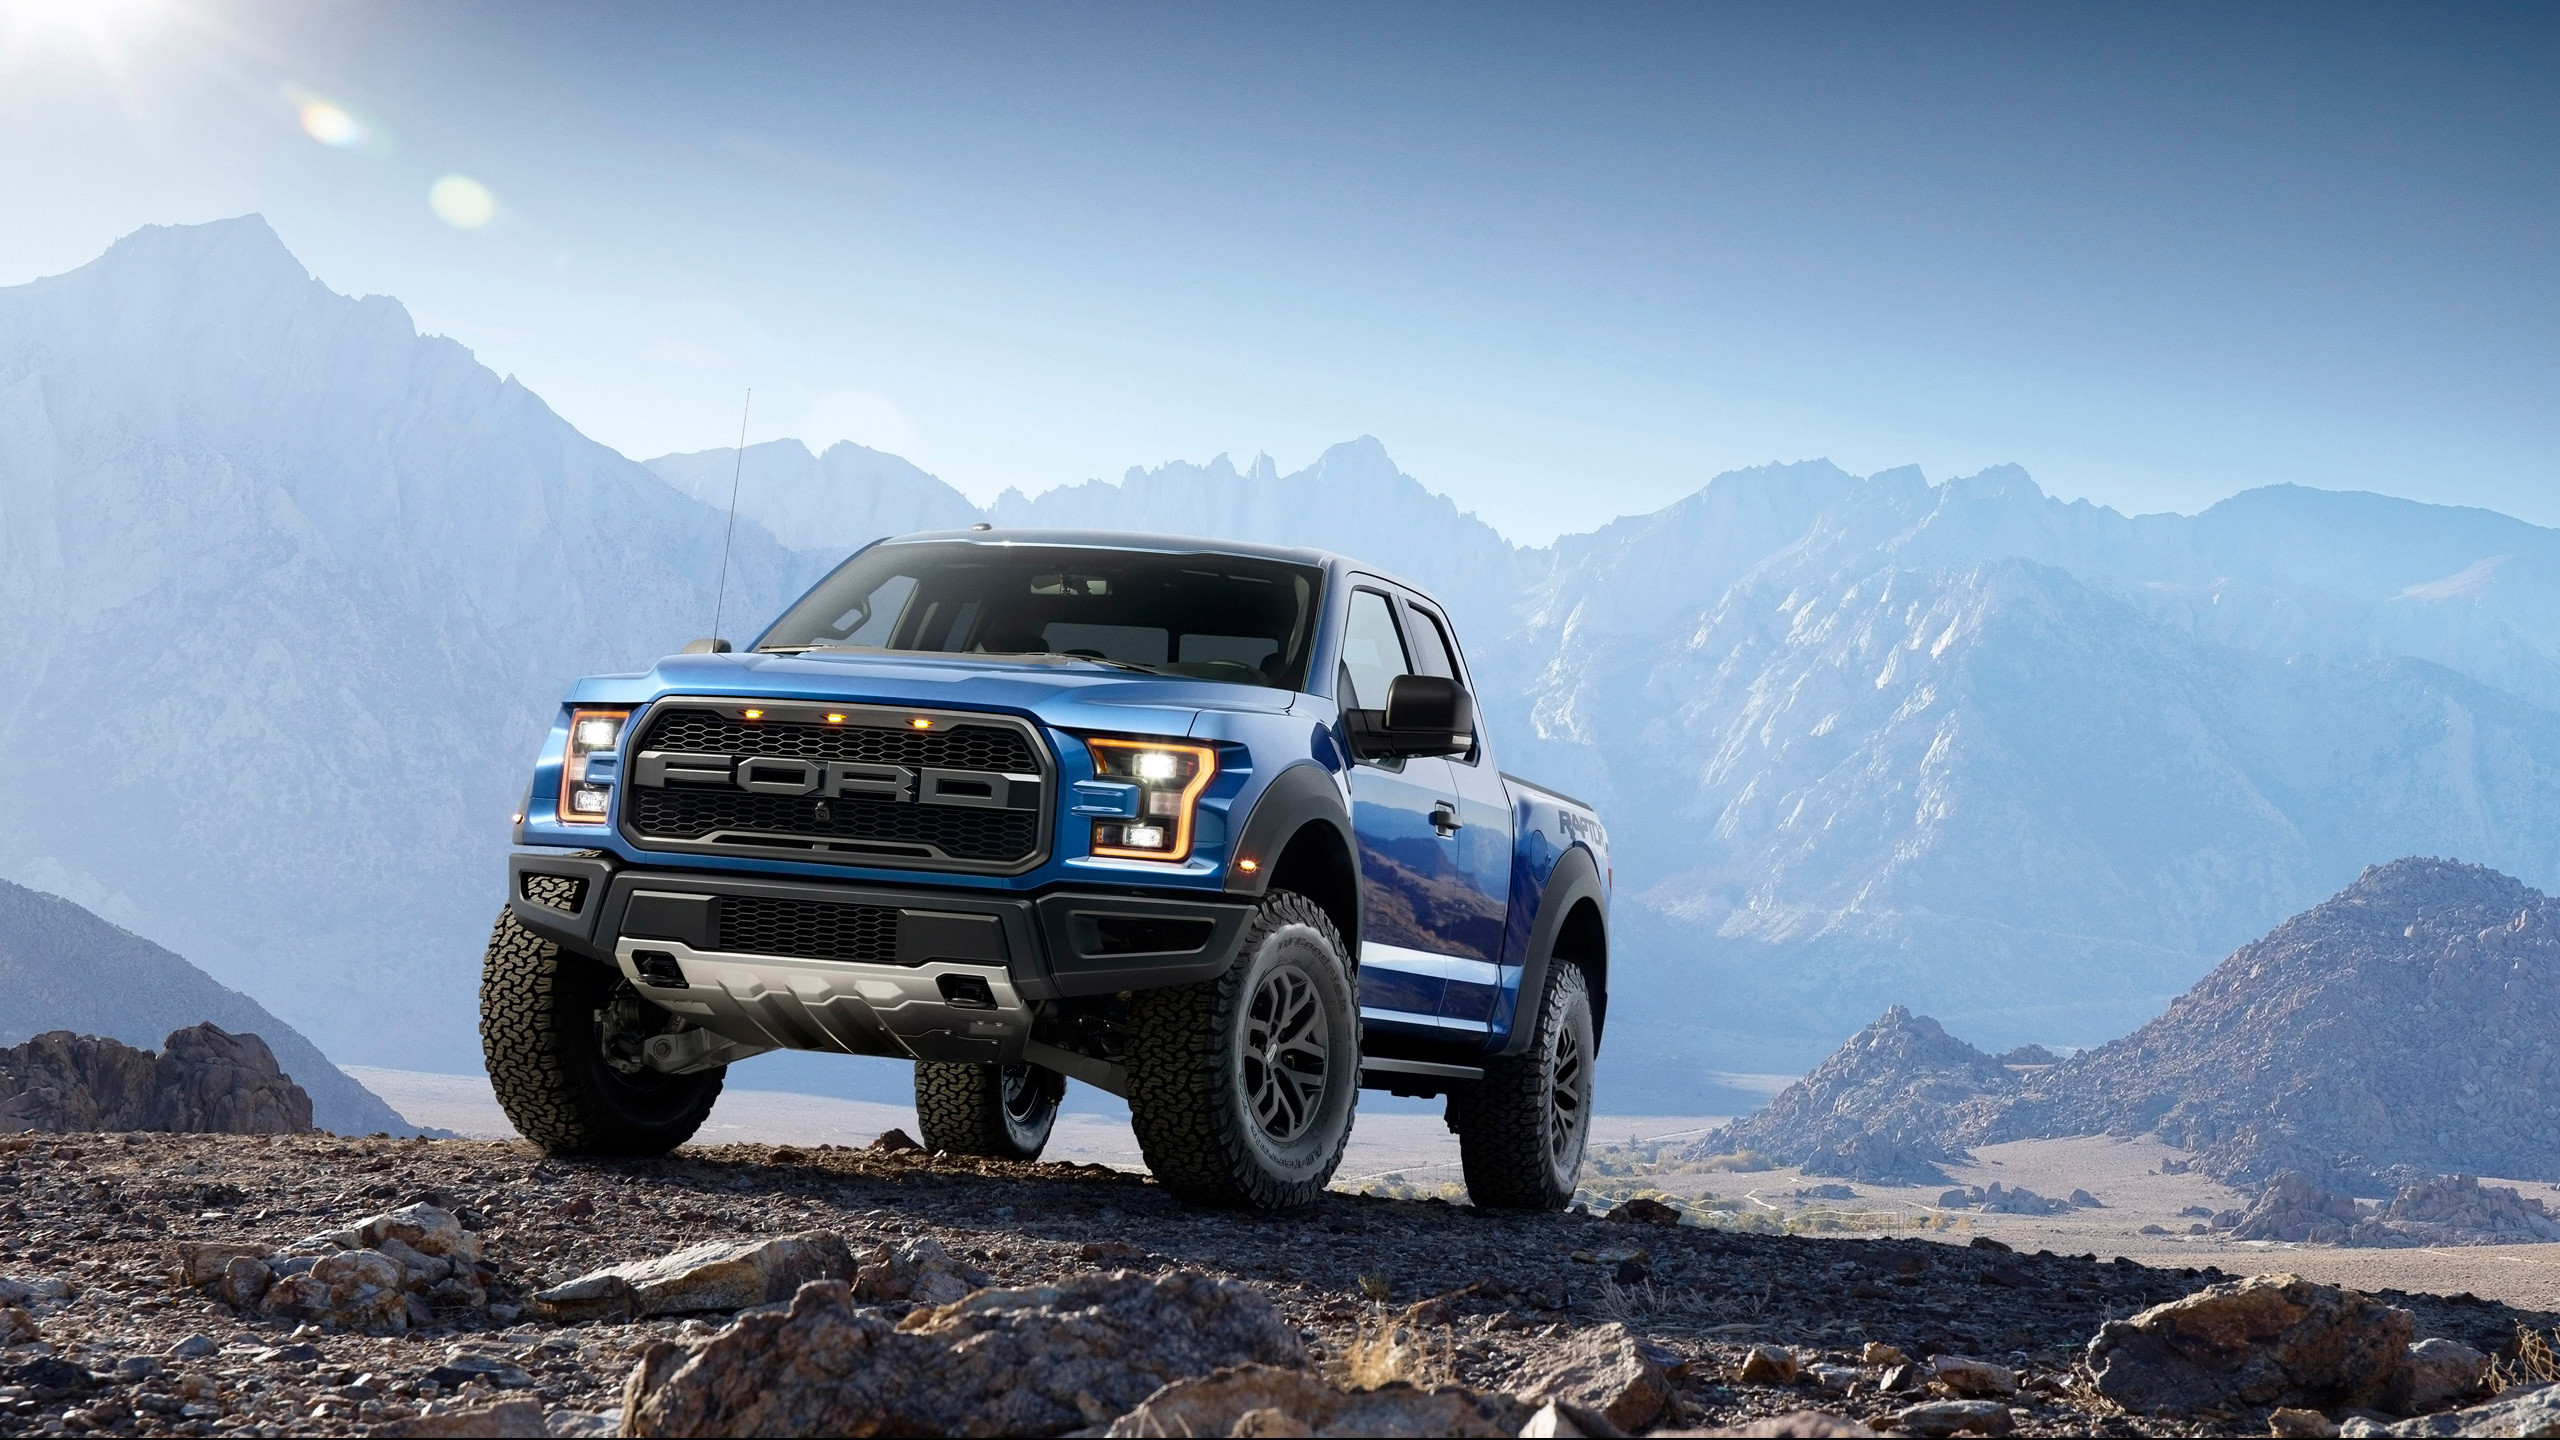 Ford raptor wallpaper hd 74 images 2560x1440 2017 ford f 150 raptor 2 wallpaper hd car wallpapers voltagebd Image collections